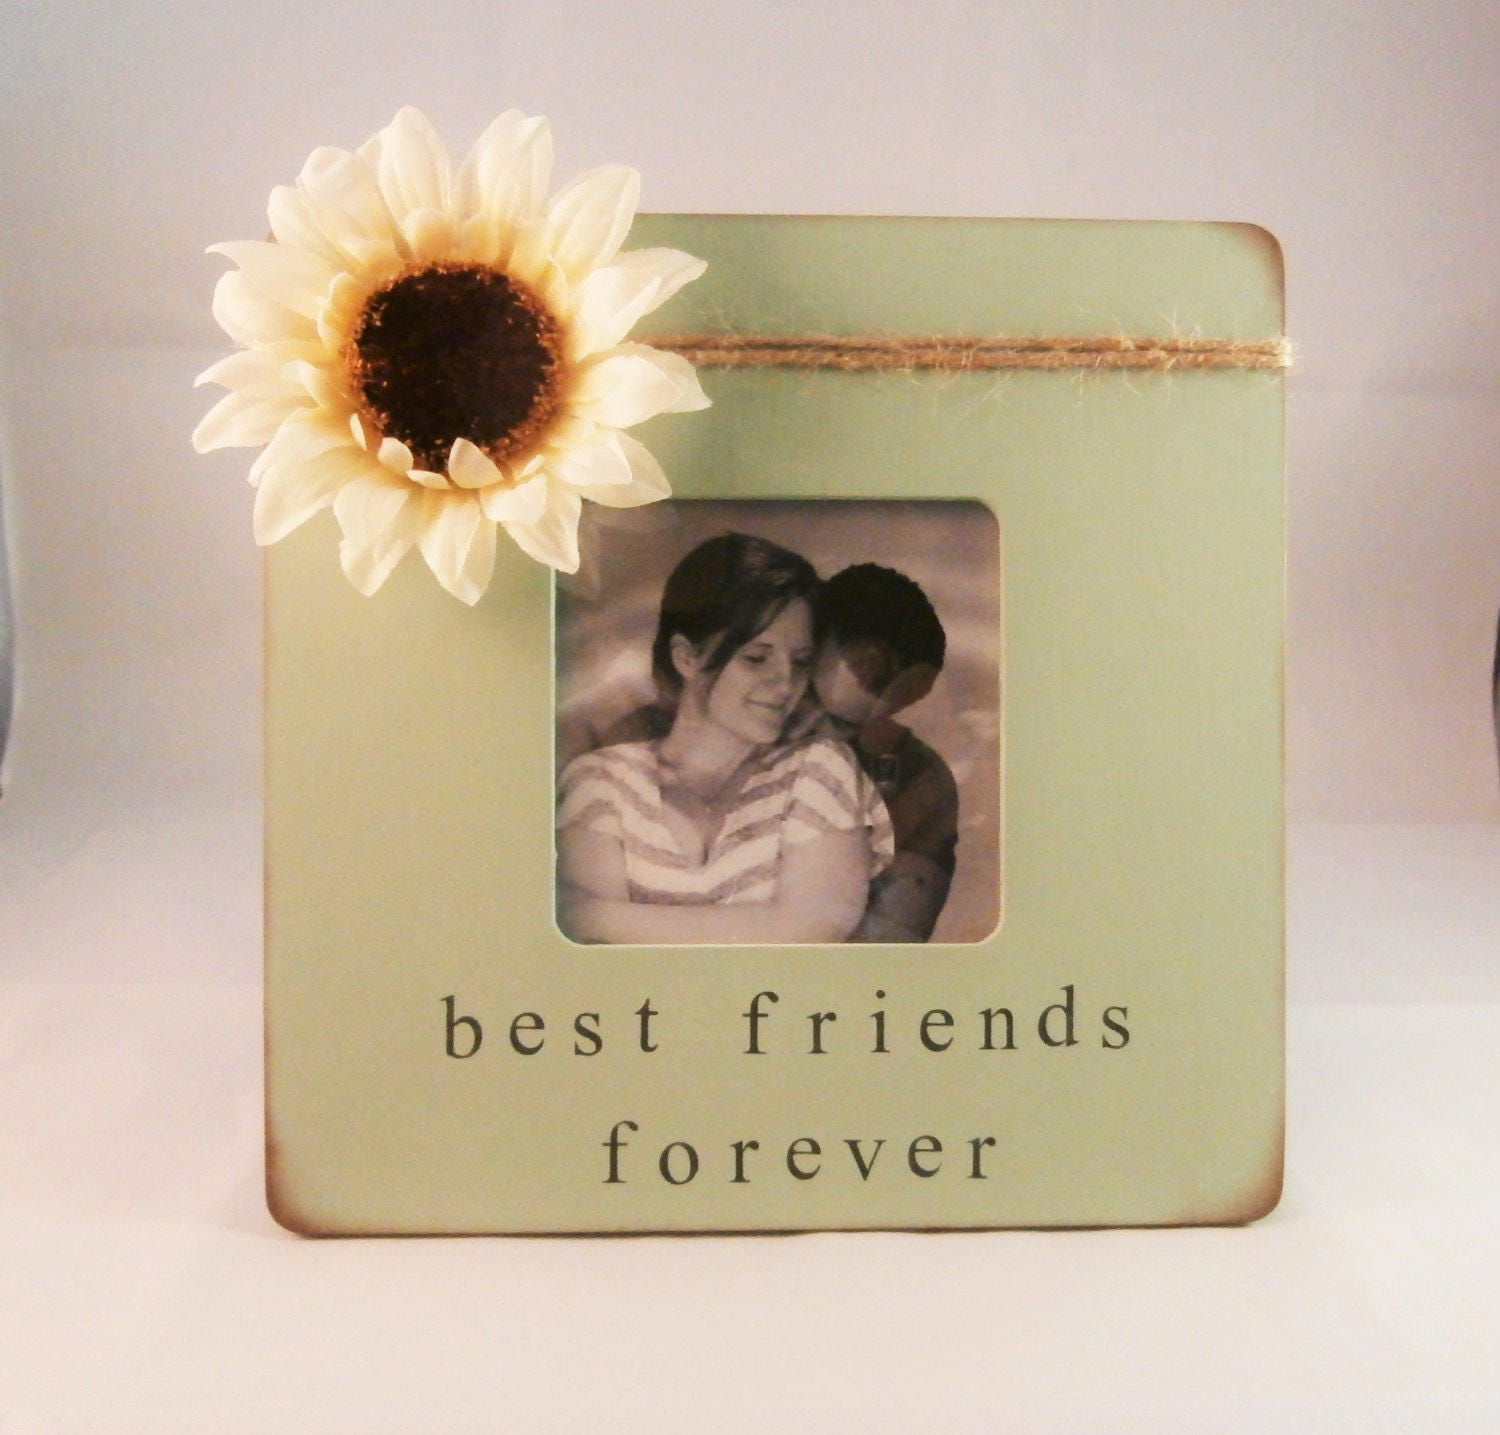 Best friends forever frame cute gifts for friends birthday | Etsy